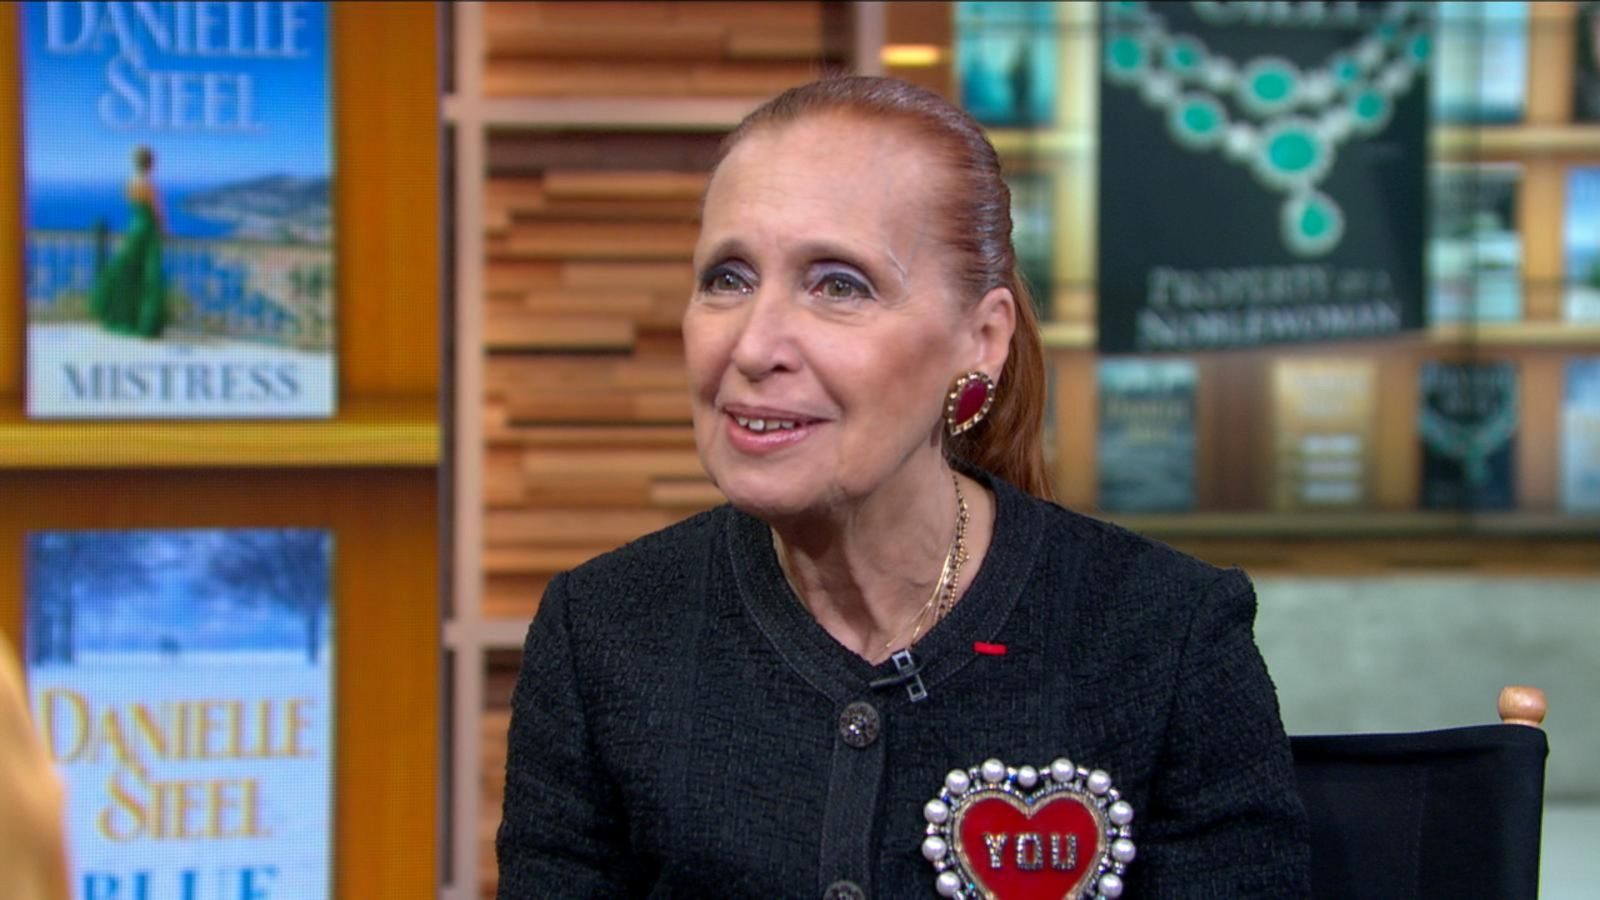 danielle steel  Danielle Steel on 'Really Exciting' New Book, 'Property of a ...